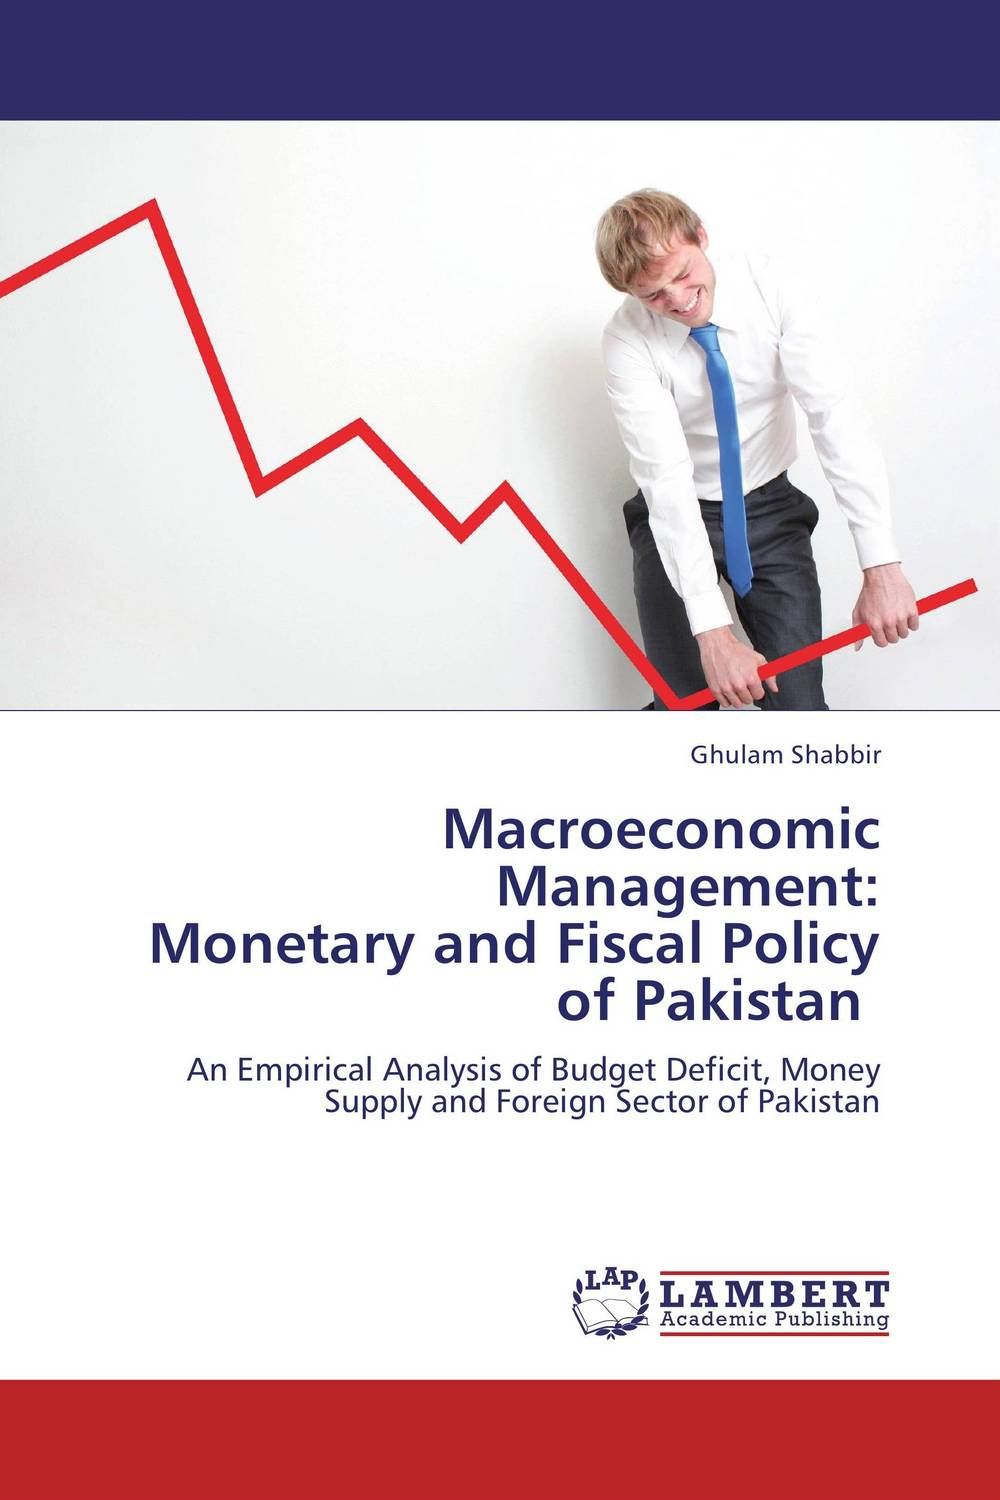 Macroeconomic Management:  Monetary and Fiscal Policy of Pakistan